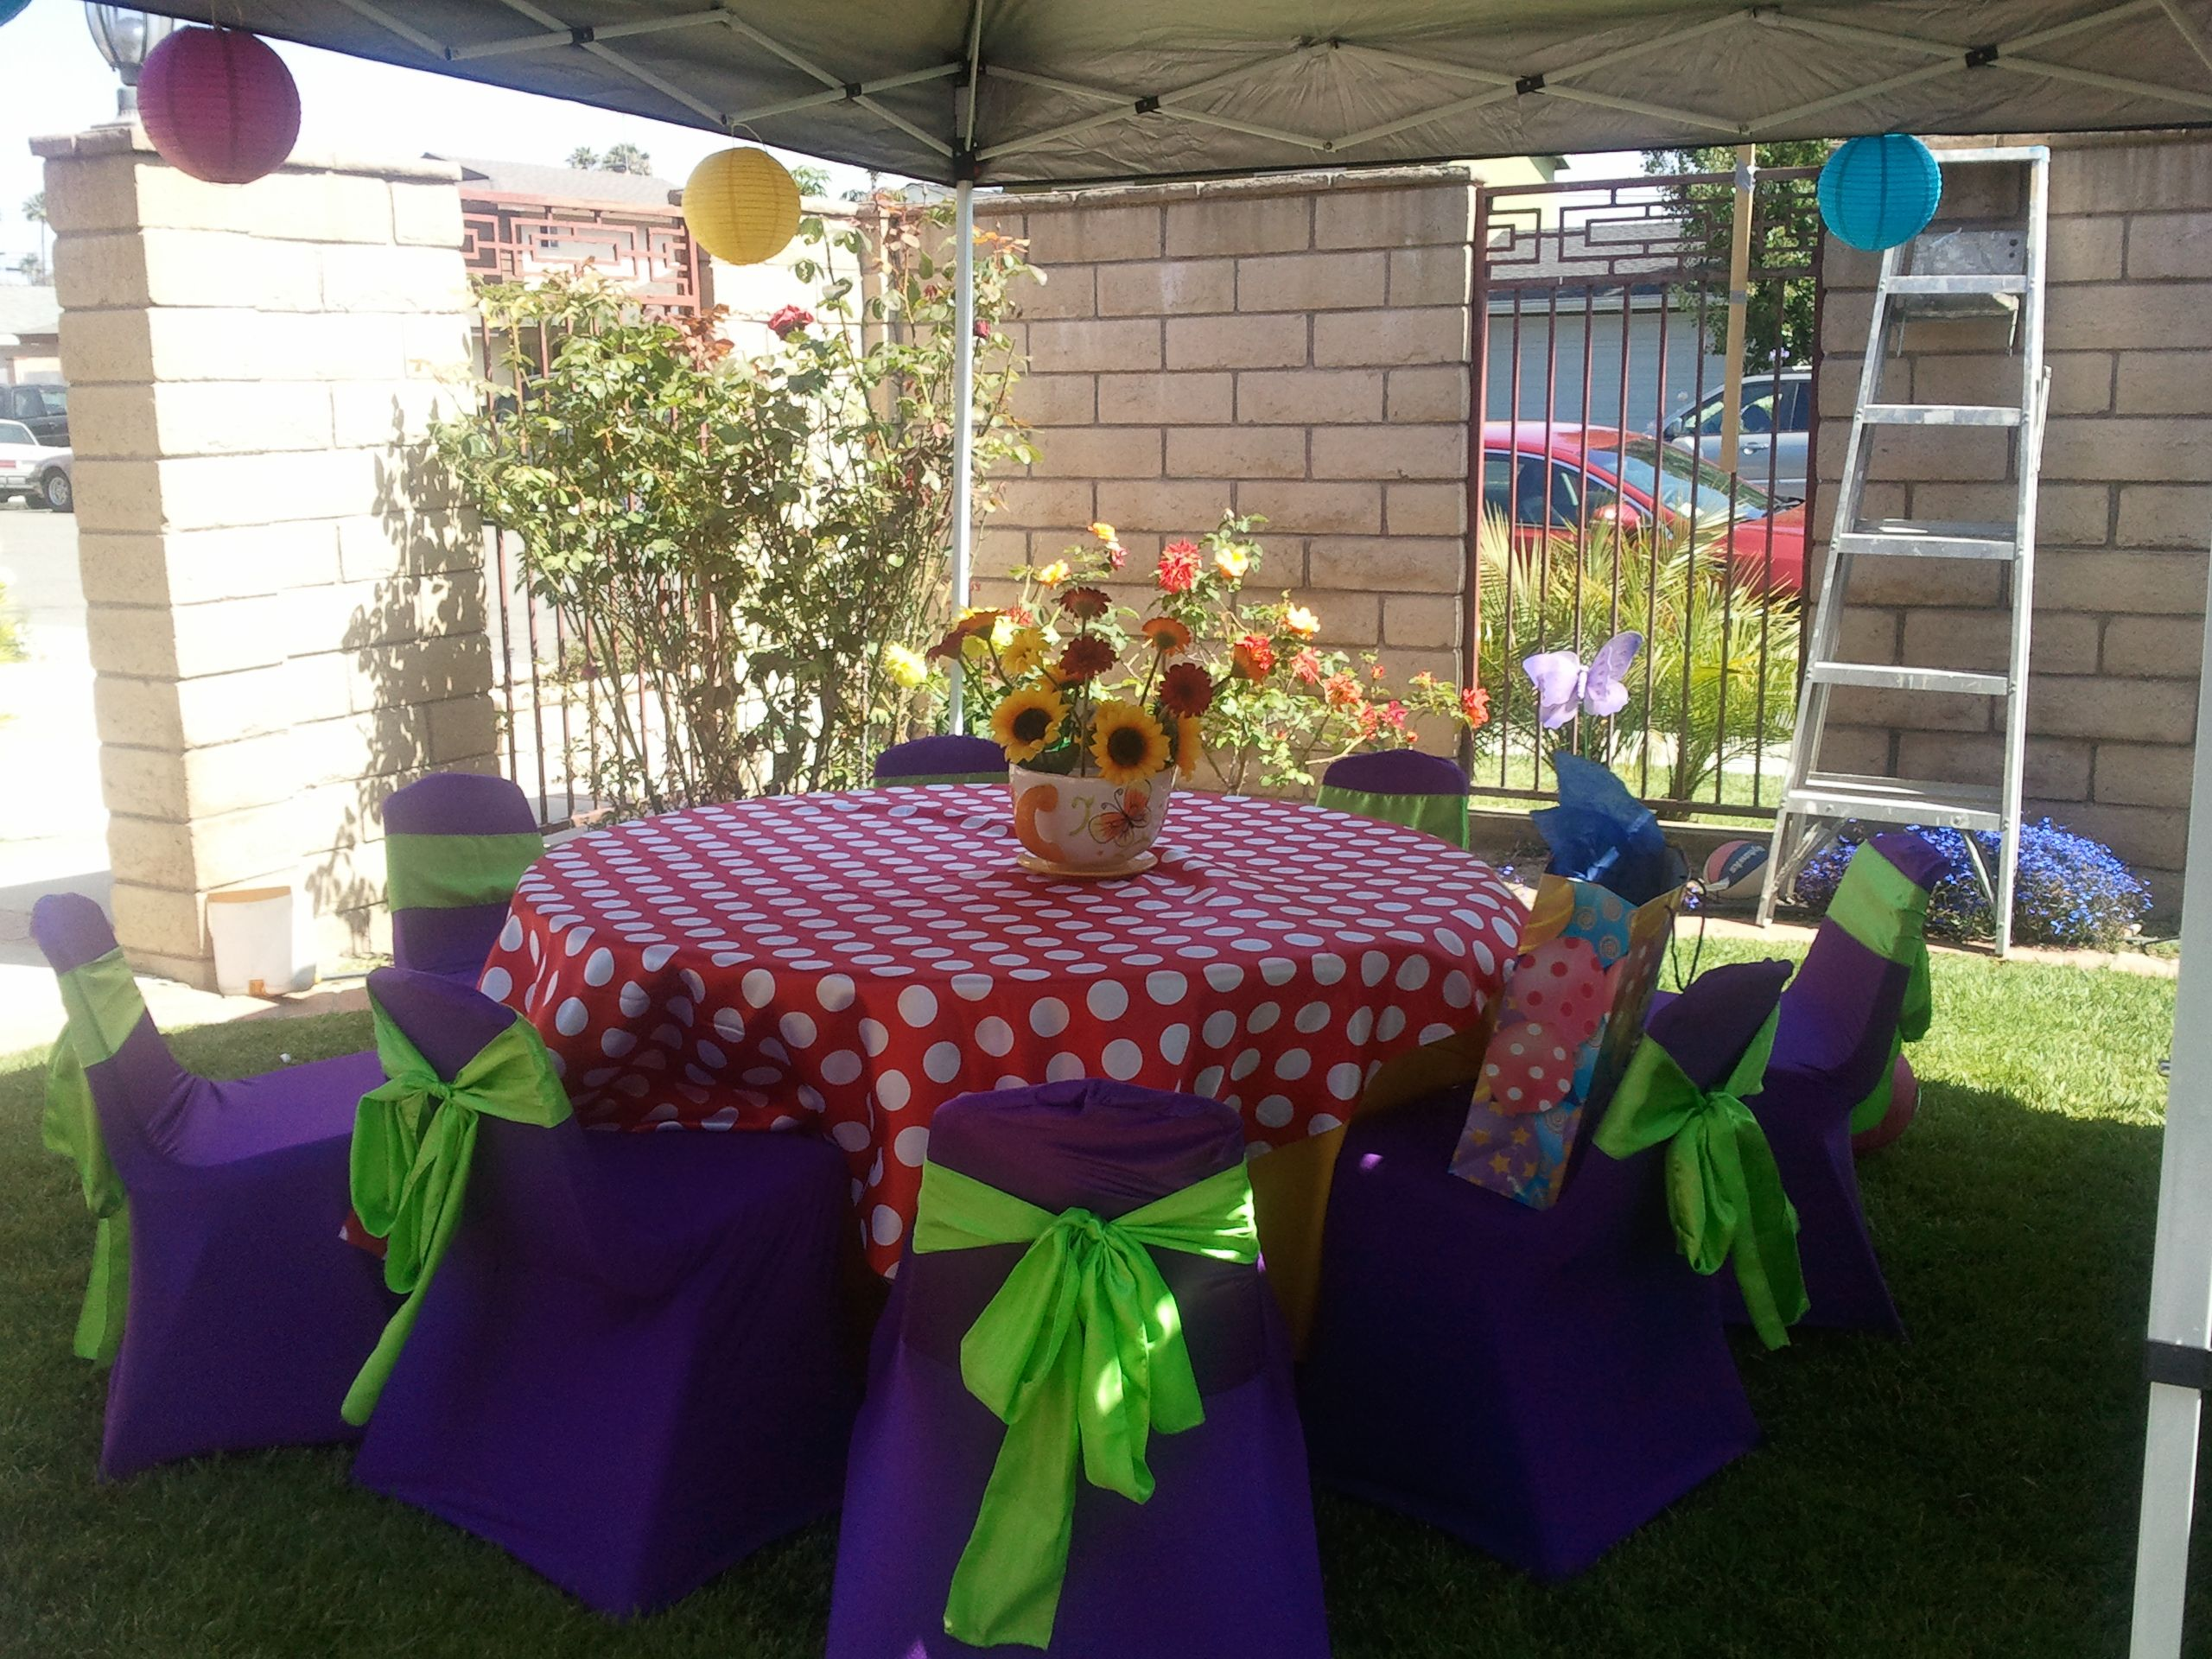 Kids tea party table - Posts About Garden Fairy Tea Party Theme Kids Birthday Party Ideas Decoration Centerpieces On Themes For Kids Party Rental